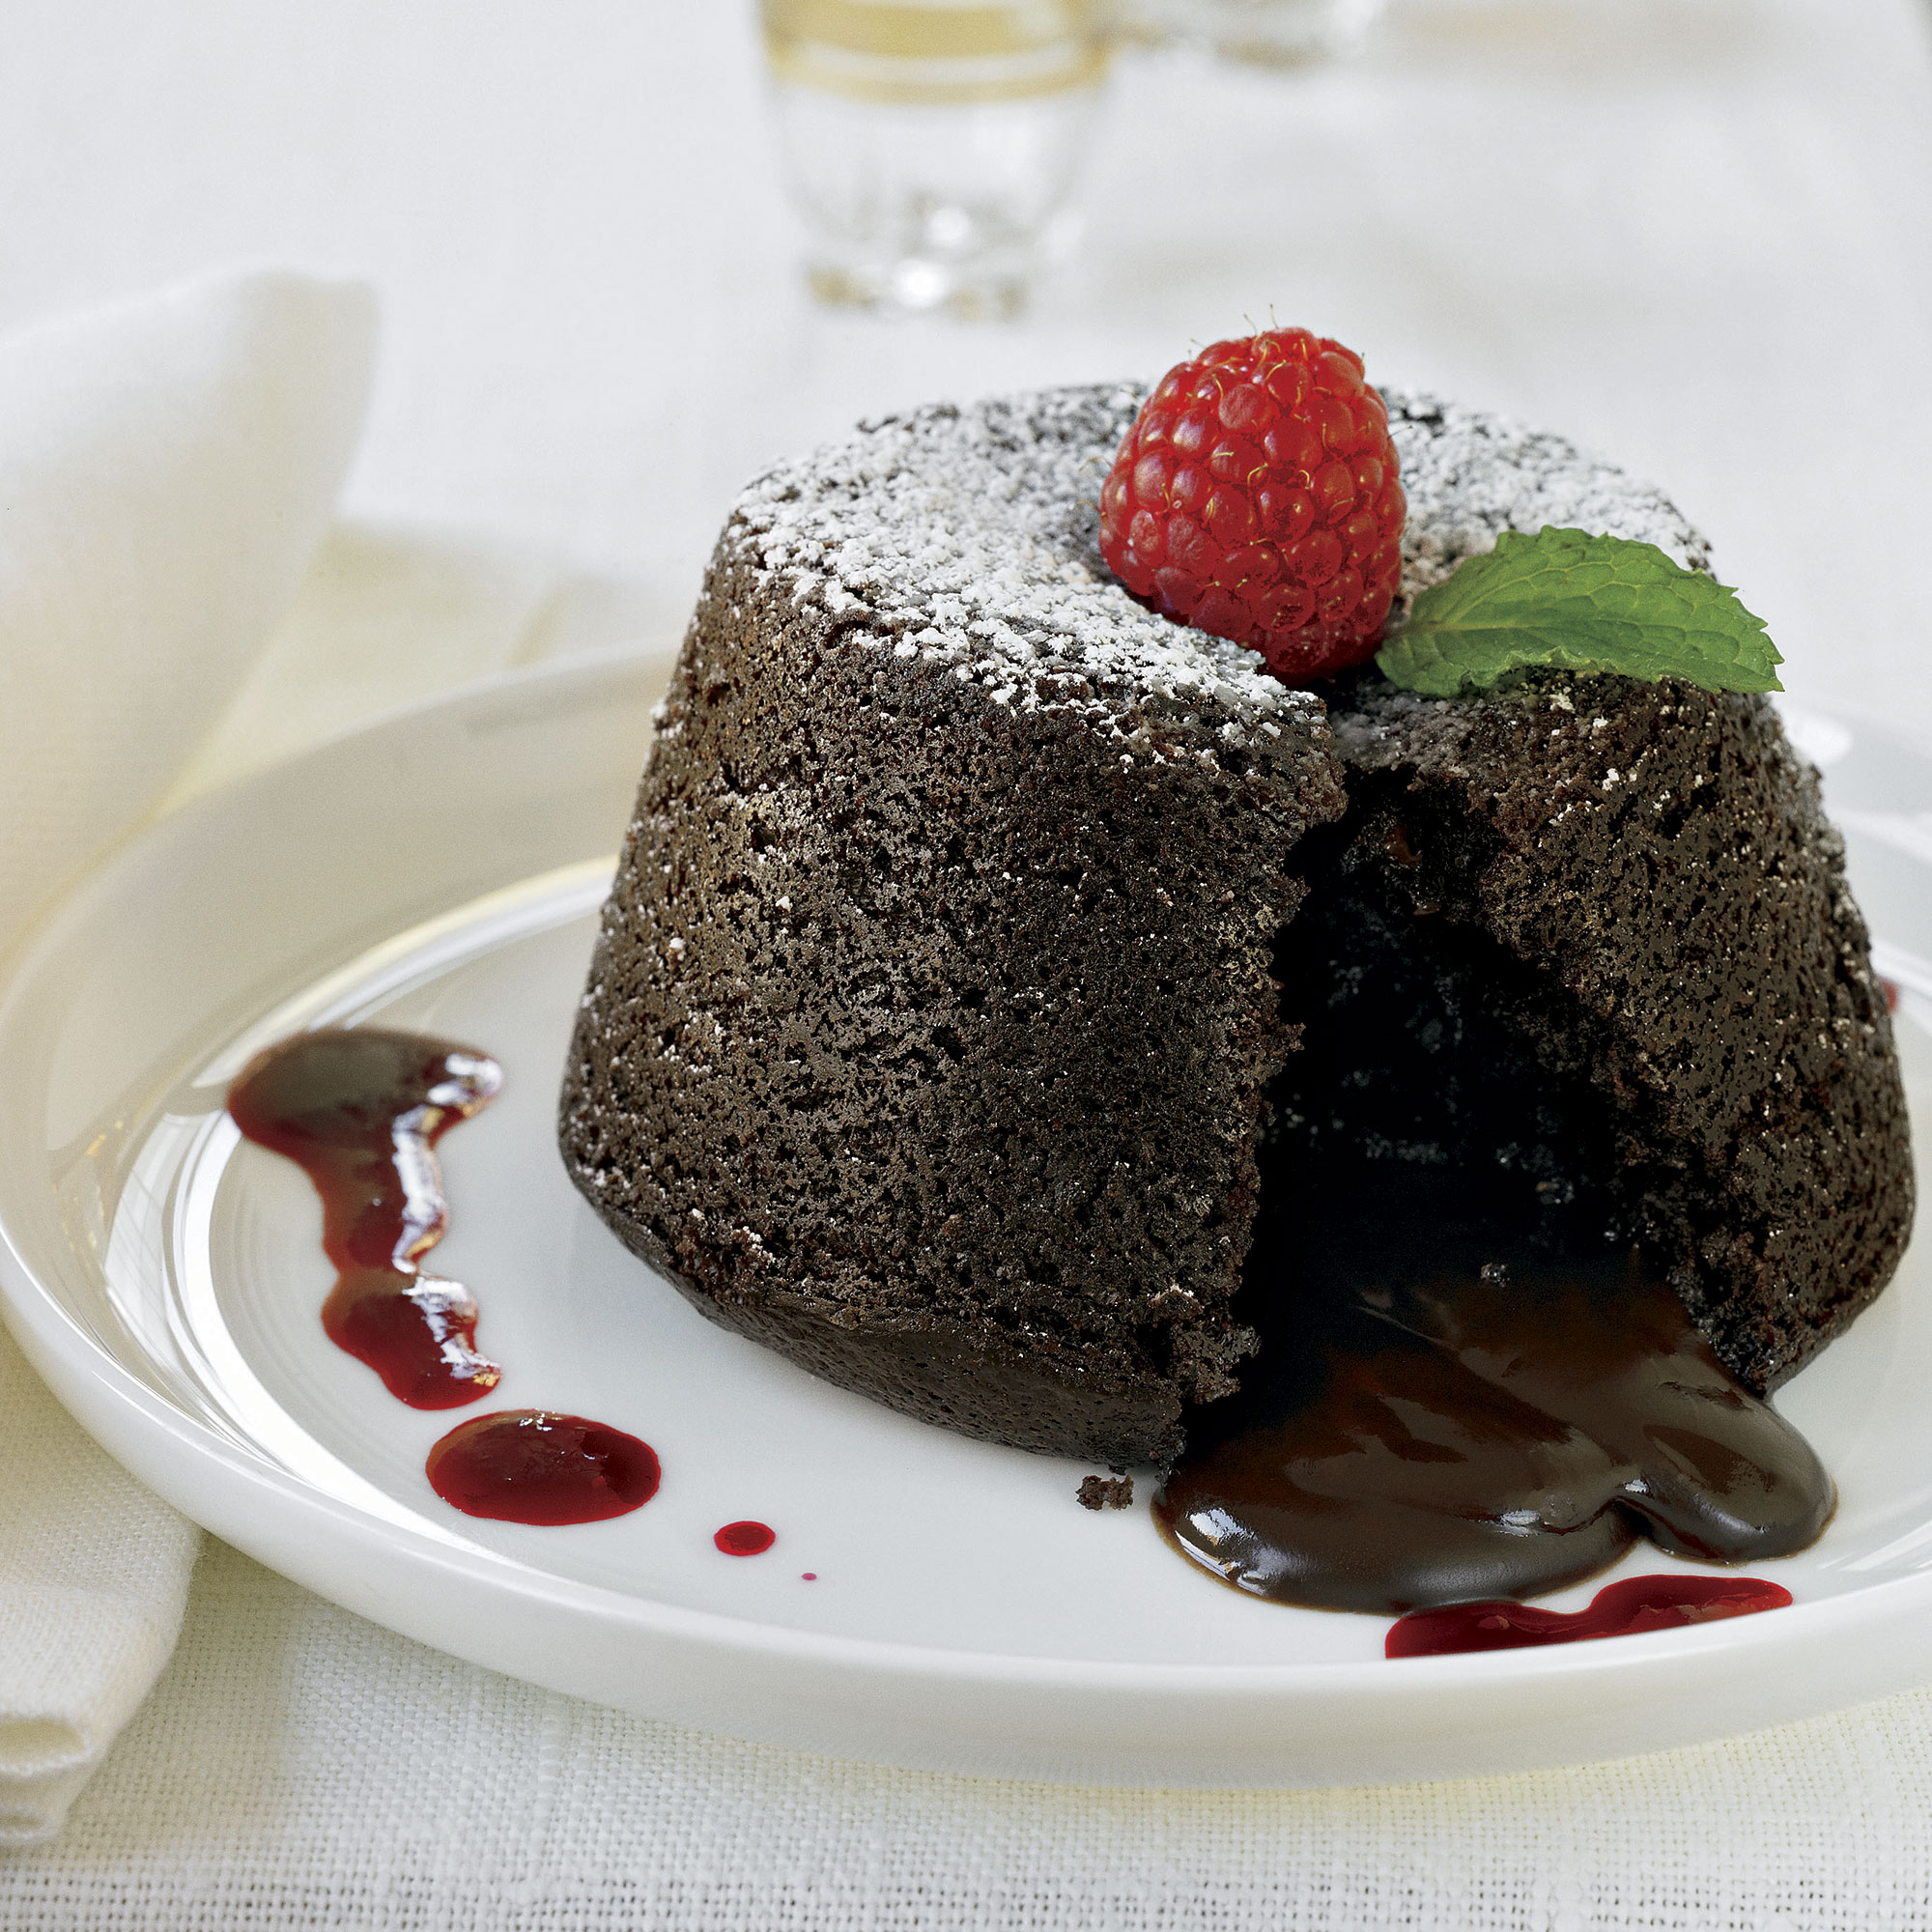 How To Make Molten Lava Cake With Cocoa Powder